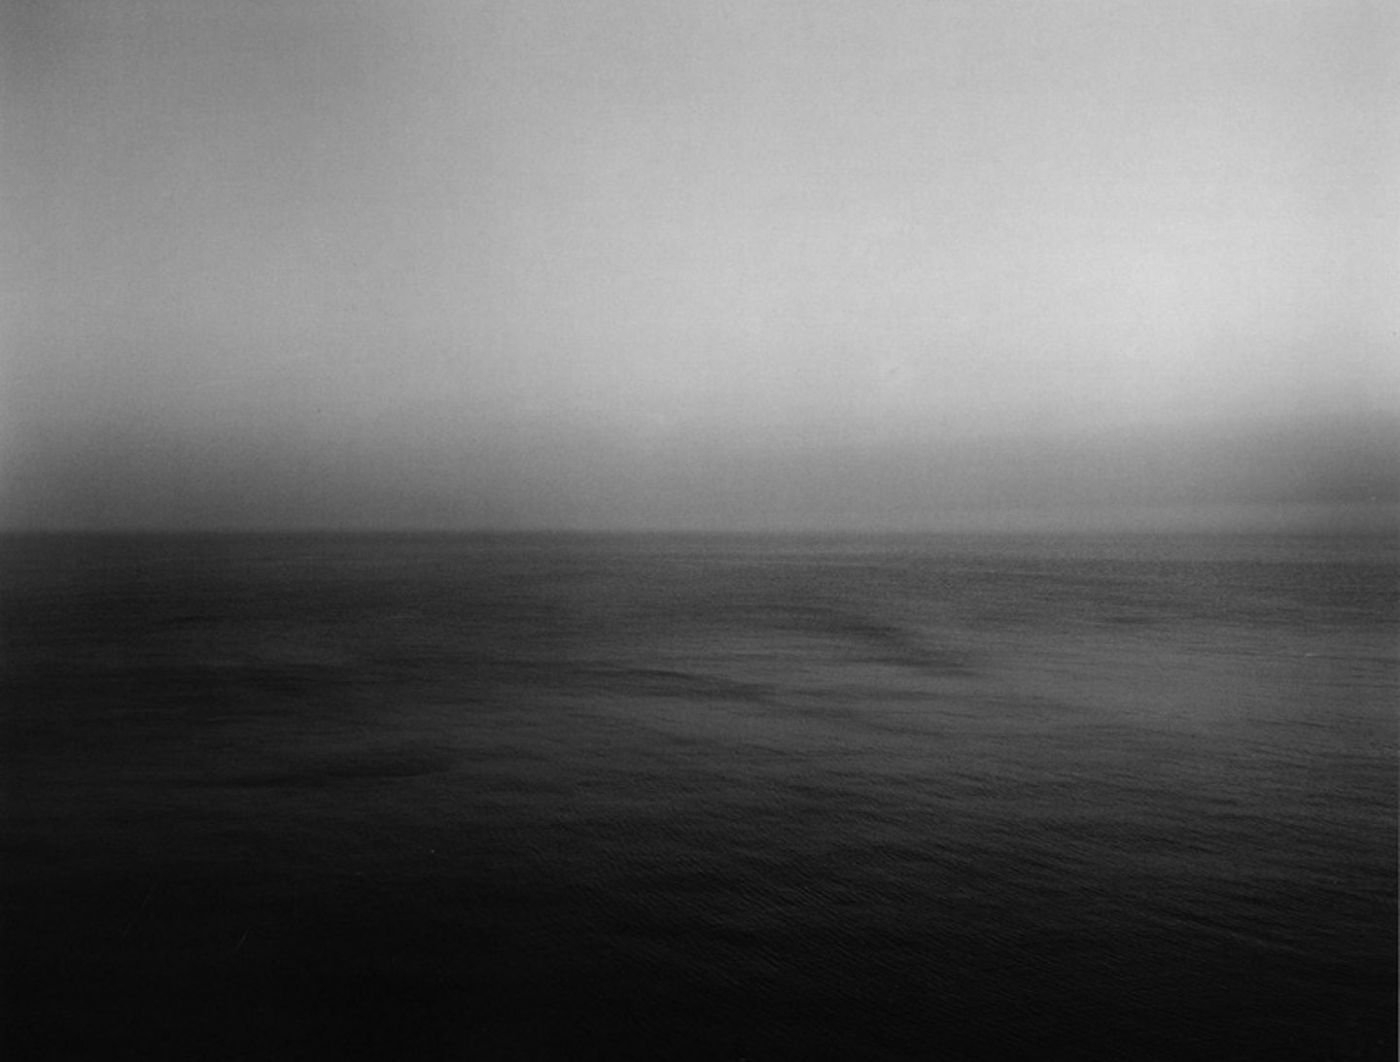 Photographs by Hiroshi Sugimoto: Dioramas, Theaters, Seascapes (Sonnabend Gallery and Sagacho Exhibit Space)